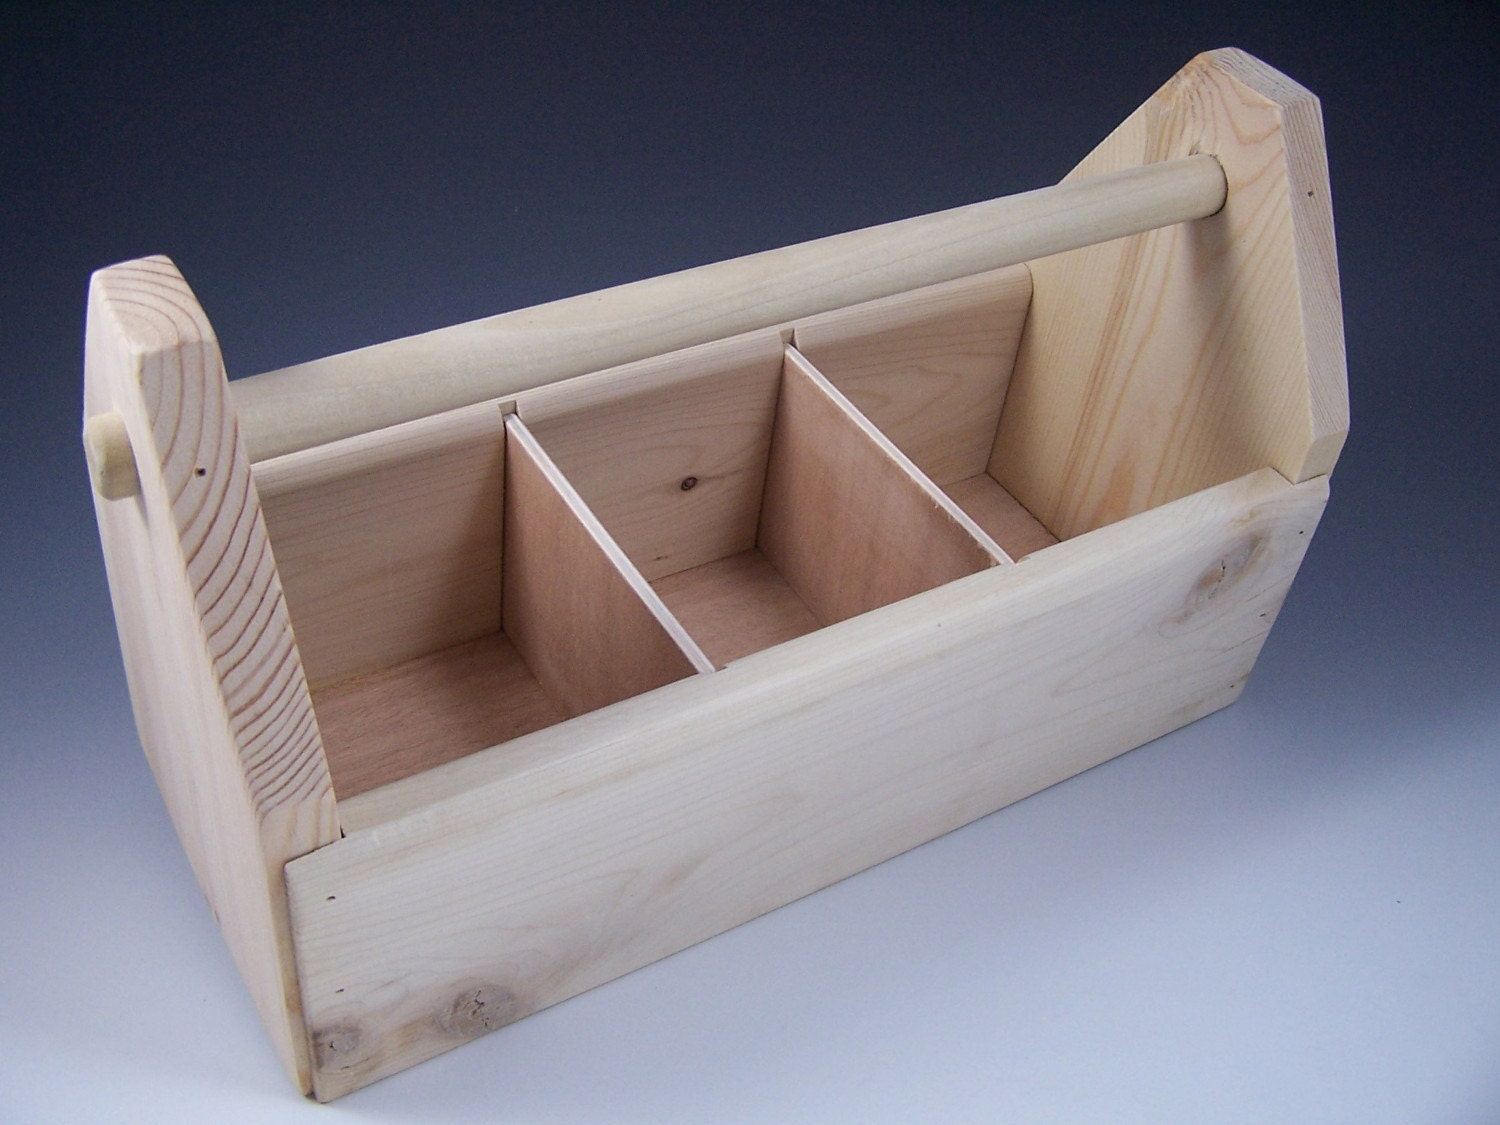 Wooden Toolbox Art Caddy Supplies Organizer With Dividers - 1500x1125 ...